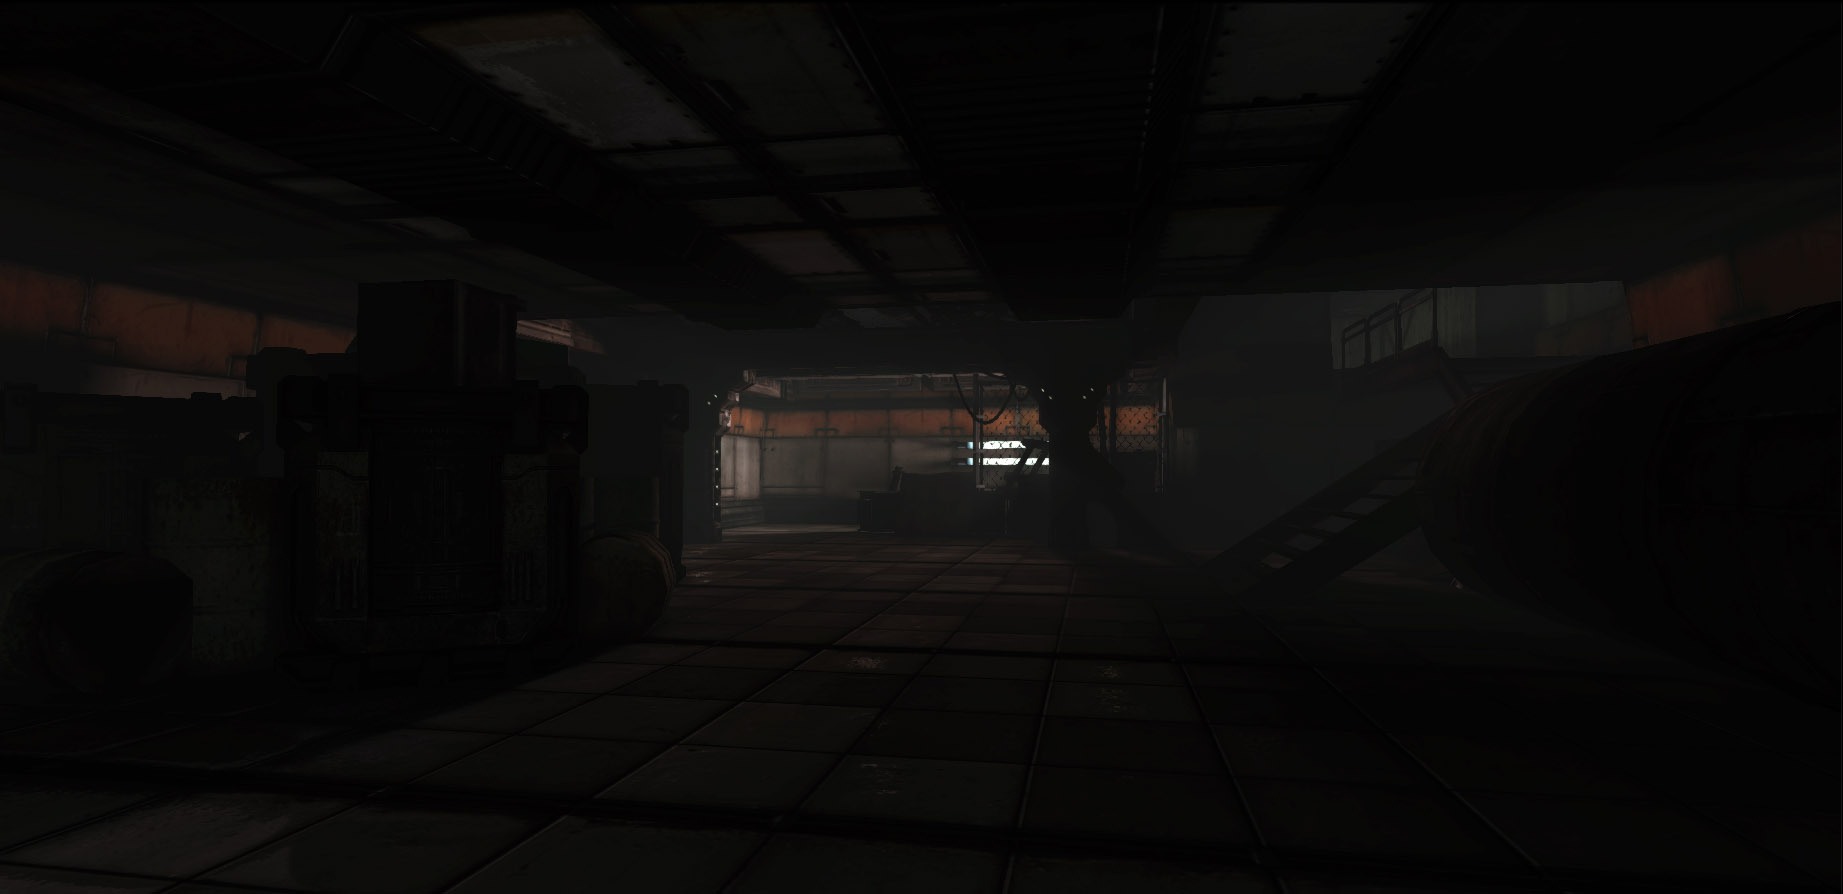 UDK sci fi environment